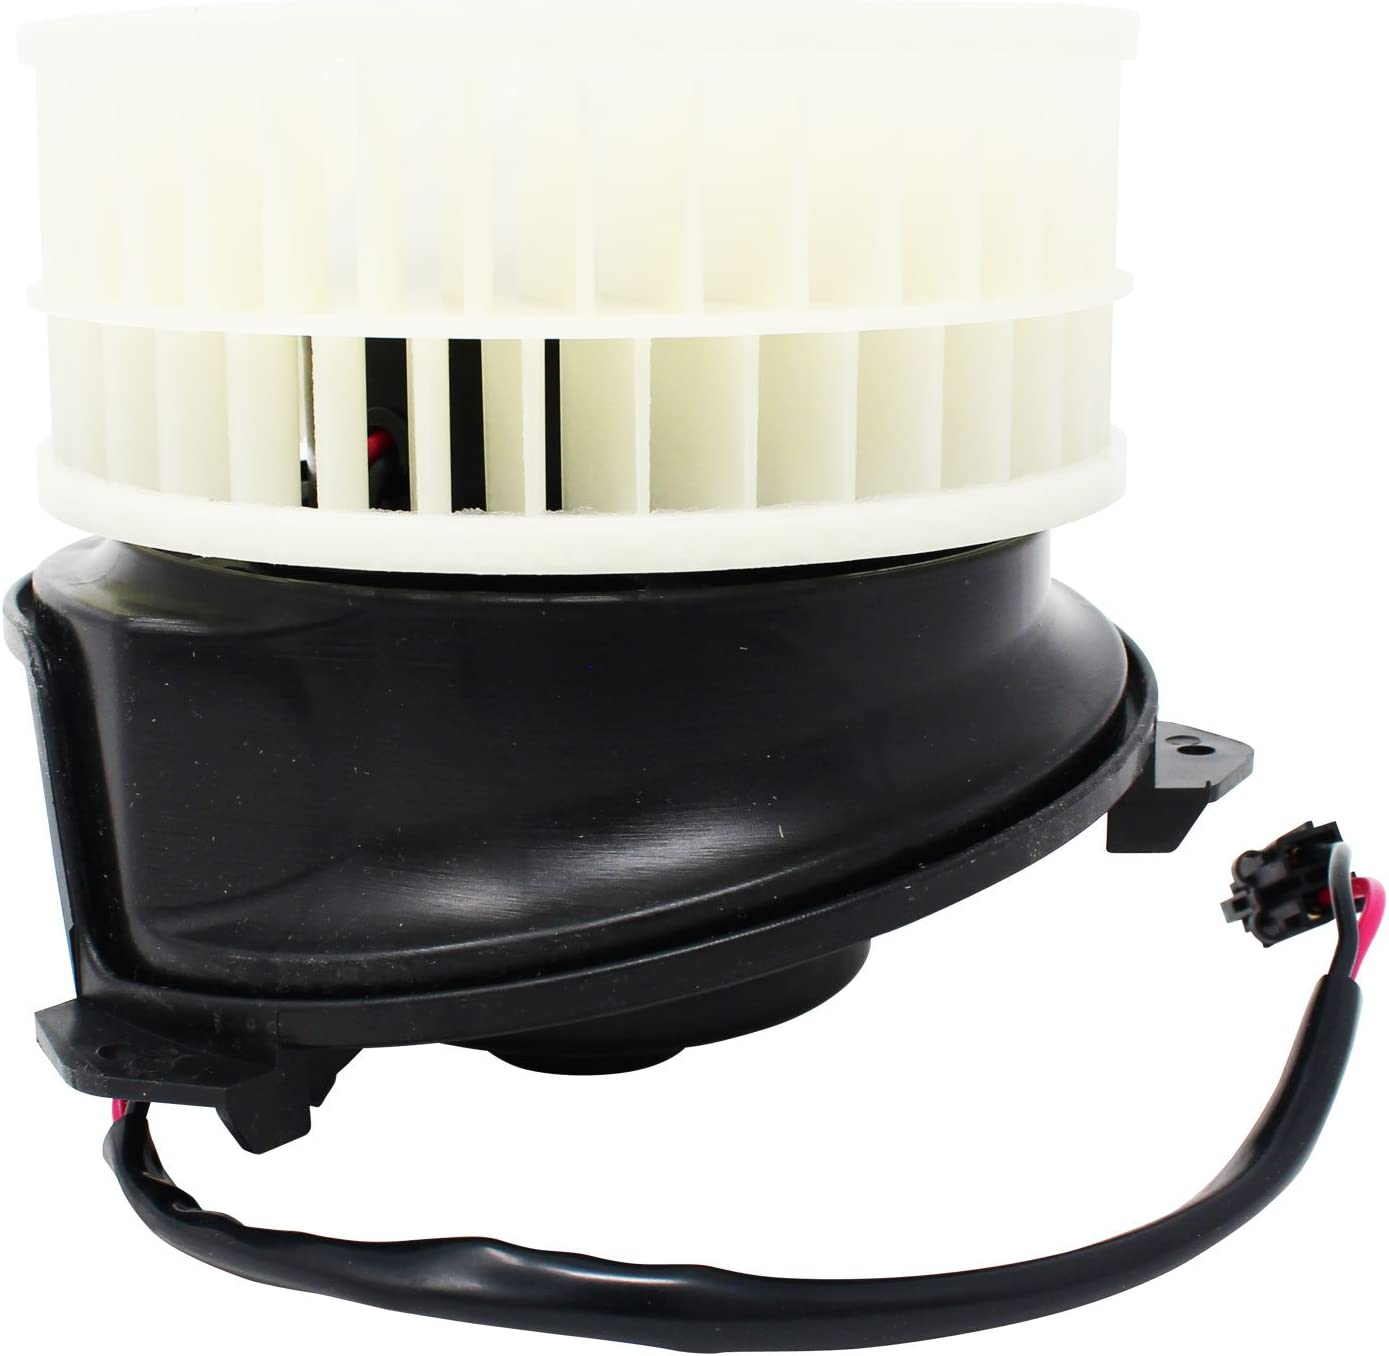 Replacement Blower Assembly for 2005 Chrysler Town /& Country Limited Mini Passenger Van 4-Door 3.3L Compatible 4885475AC Fan Motor Assembly